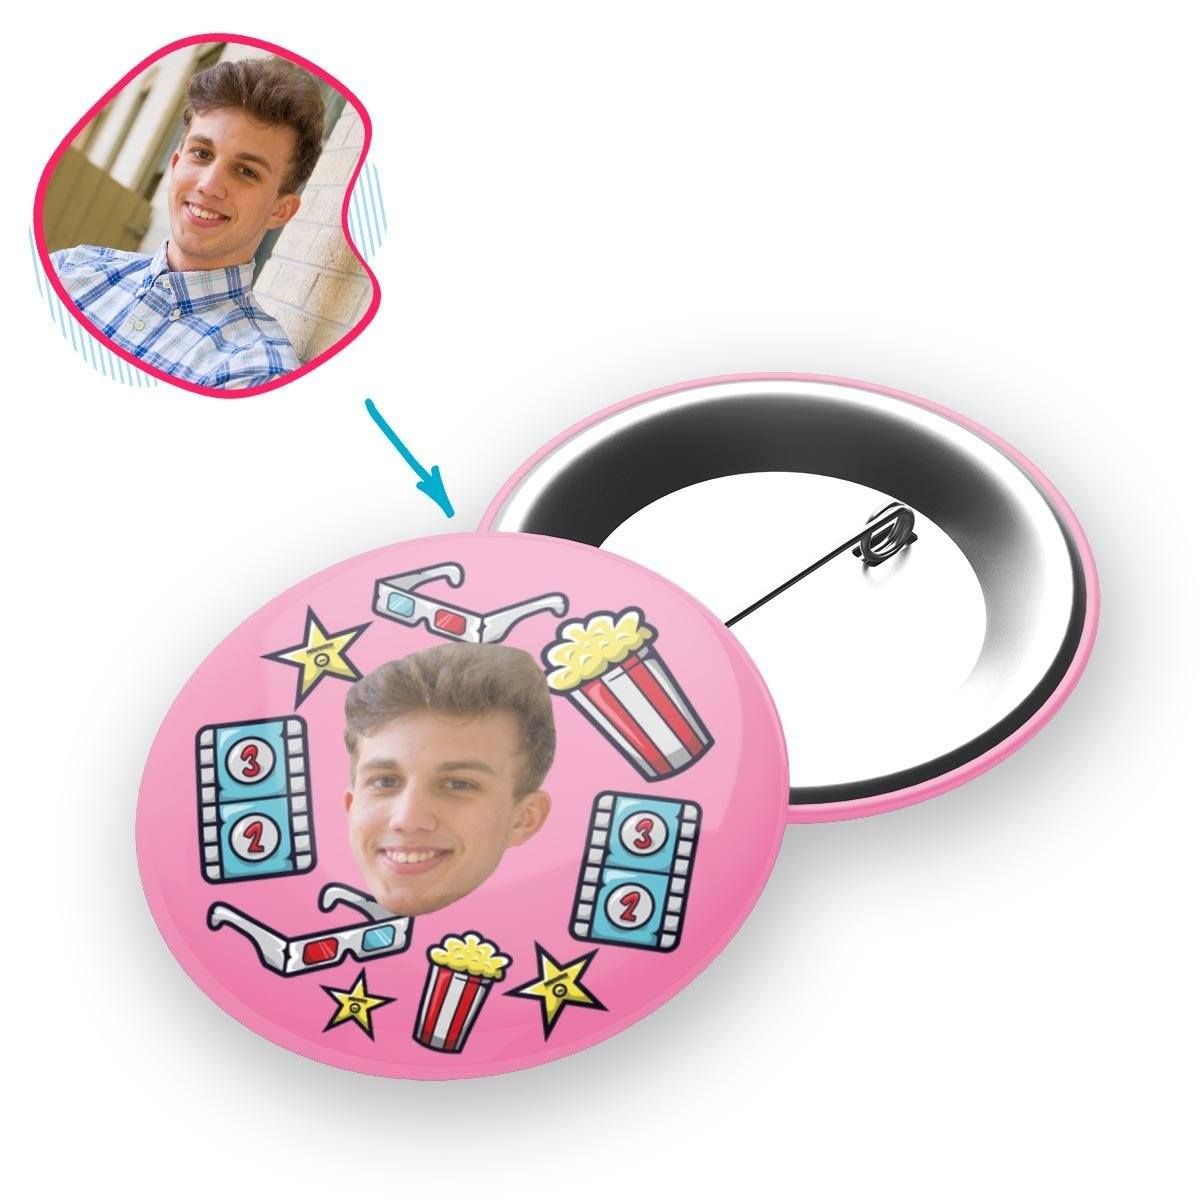 pink Movie pin personalized with photo of face printed on it